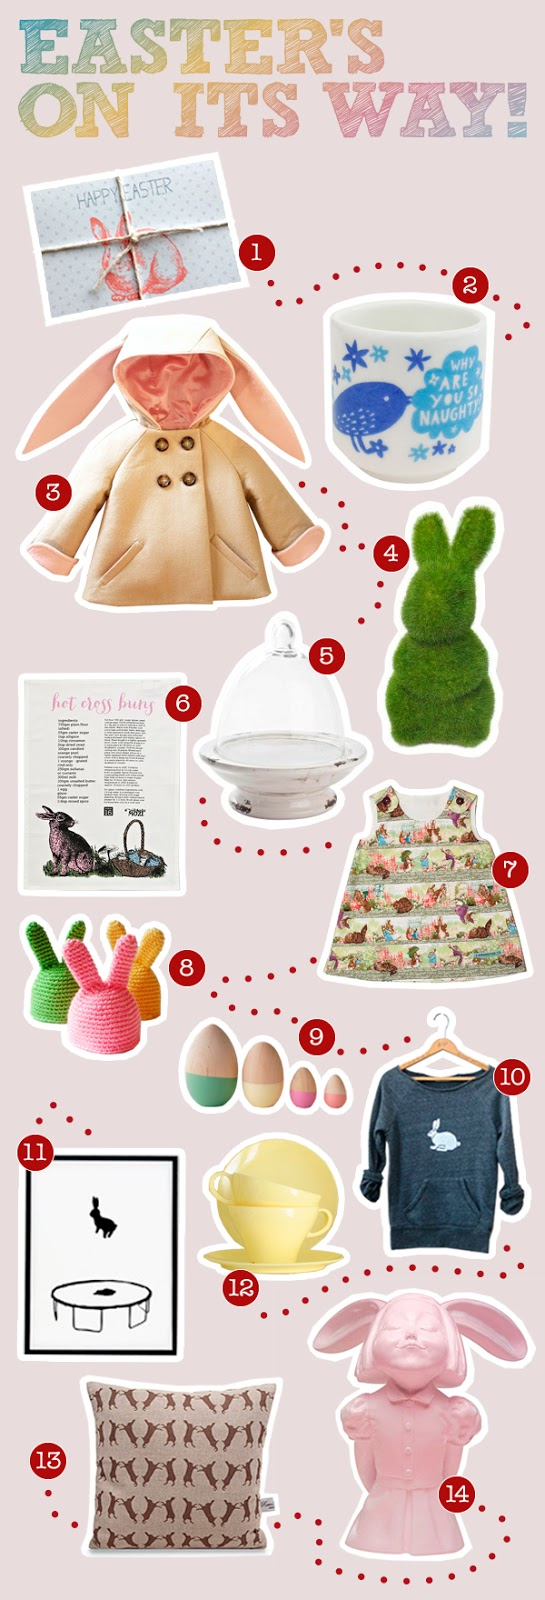 Easter's on its way gift guide